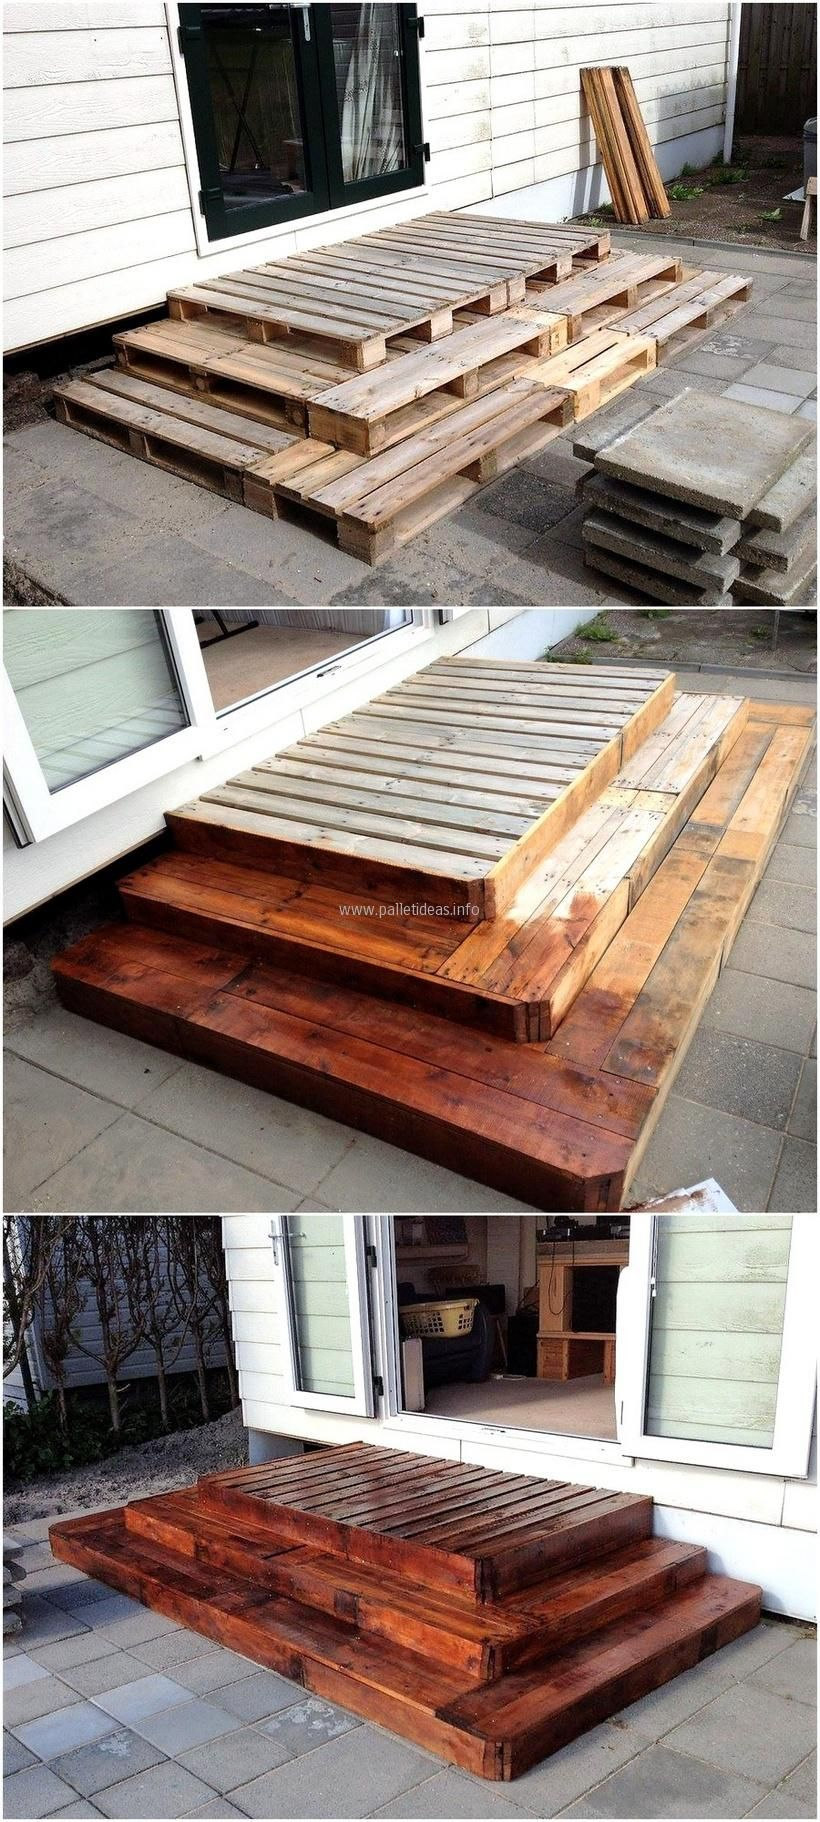 Pallet Furniture Pictures Outdoor Furniture Ideas Pallet Furniture Diy Ideas Kitchen Counter